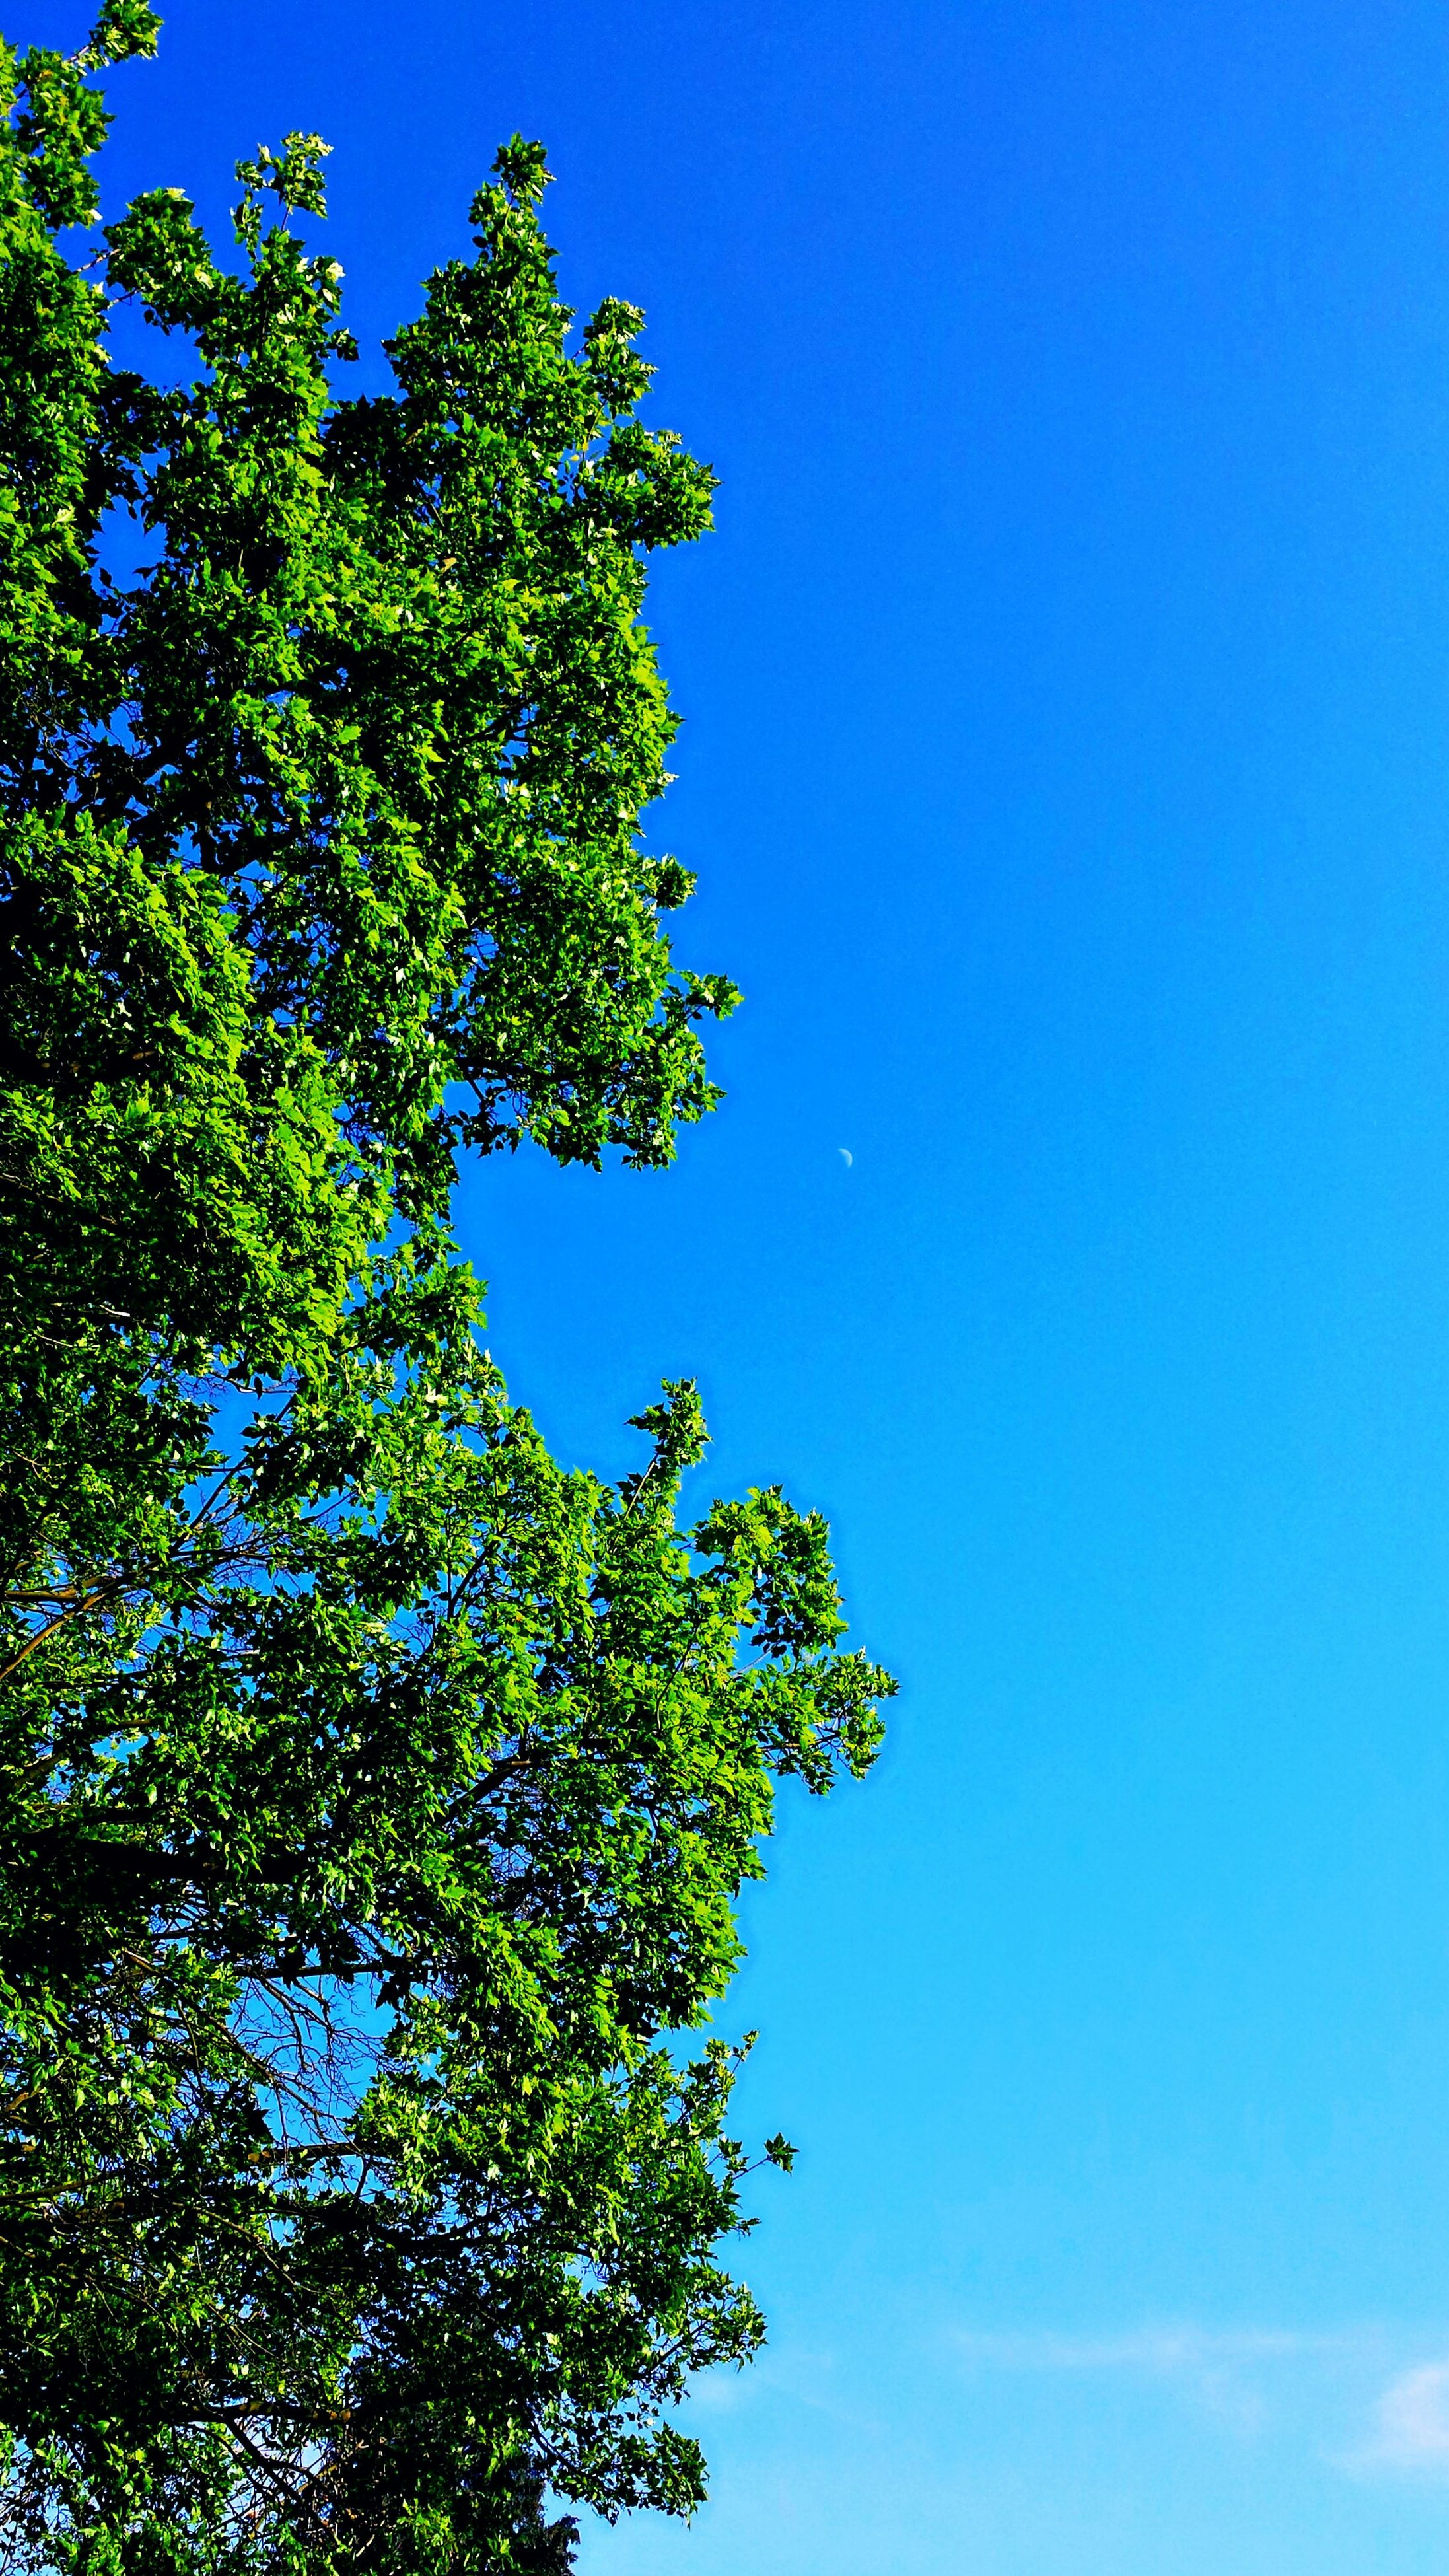 blue, tree, low angle view, clear sky, growth, copy space, green color, high section, beauty in nature, scenics, branch, green, tranquility, nature, day, tranquil scene, treetop, lush foliage, no people